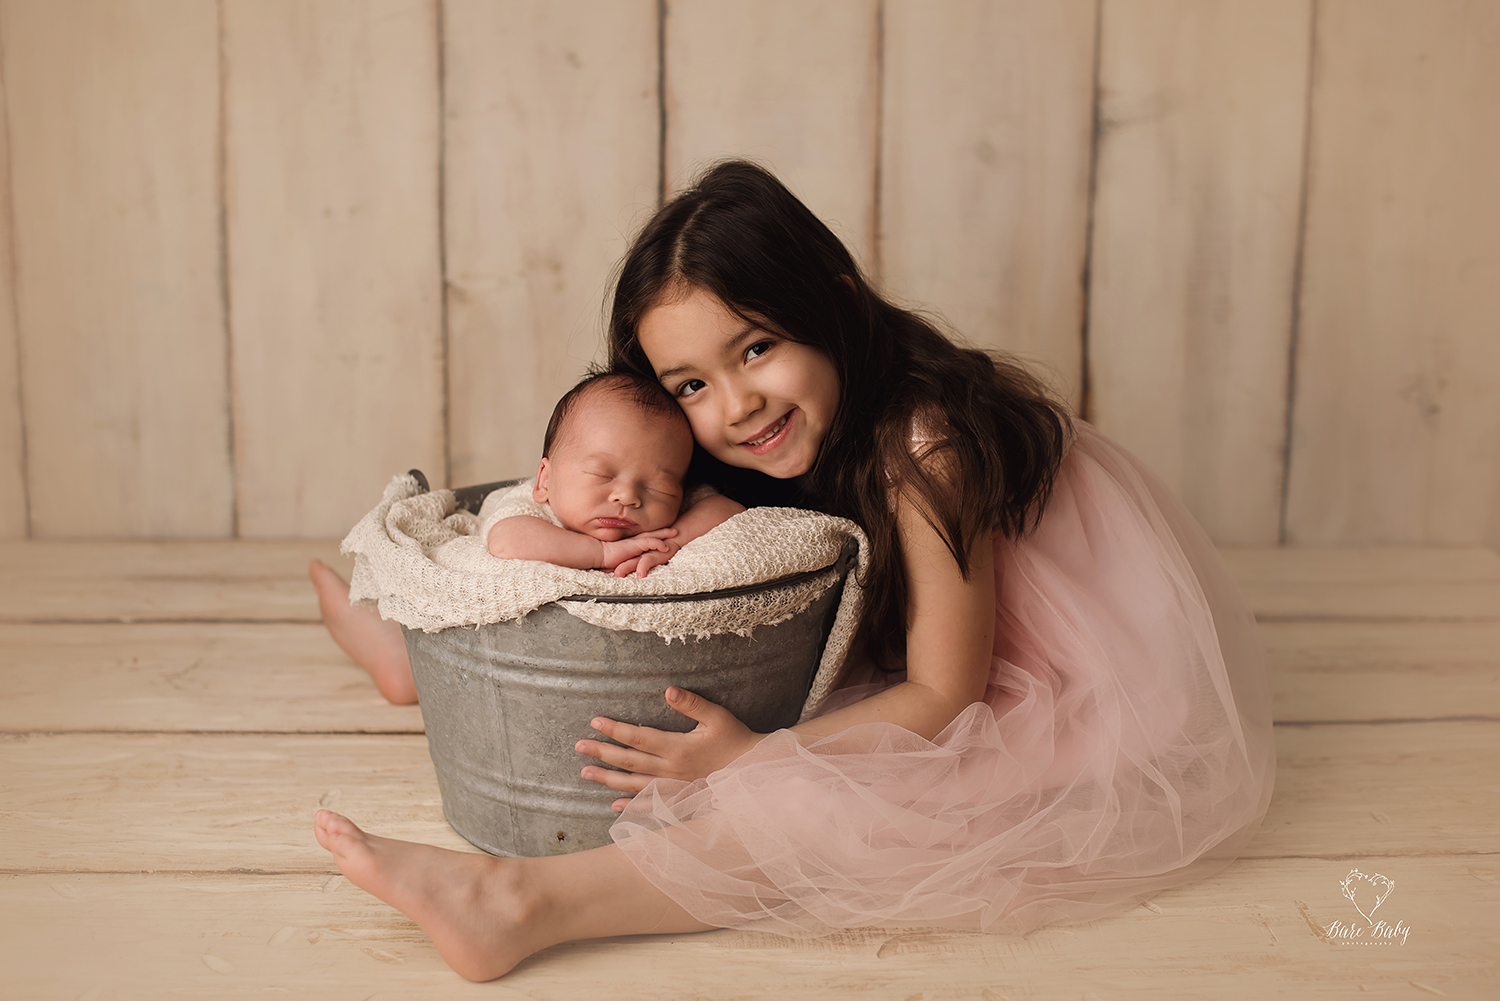 sibling-photo-ideas-columbusohio-barebabyphotography.jpg